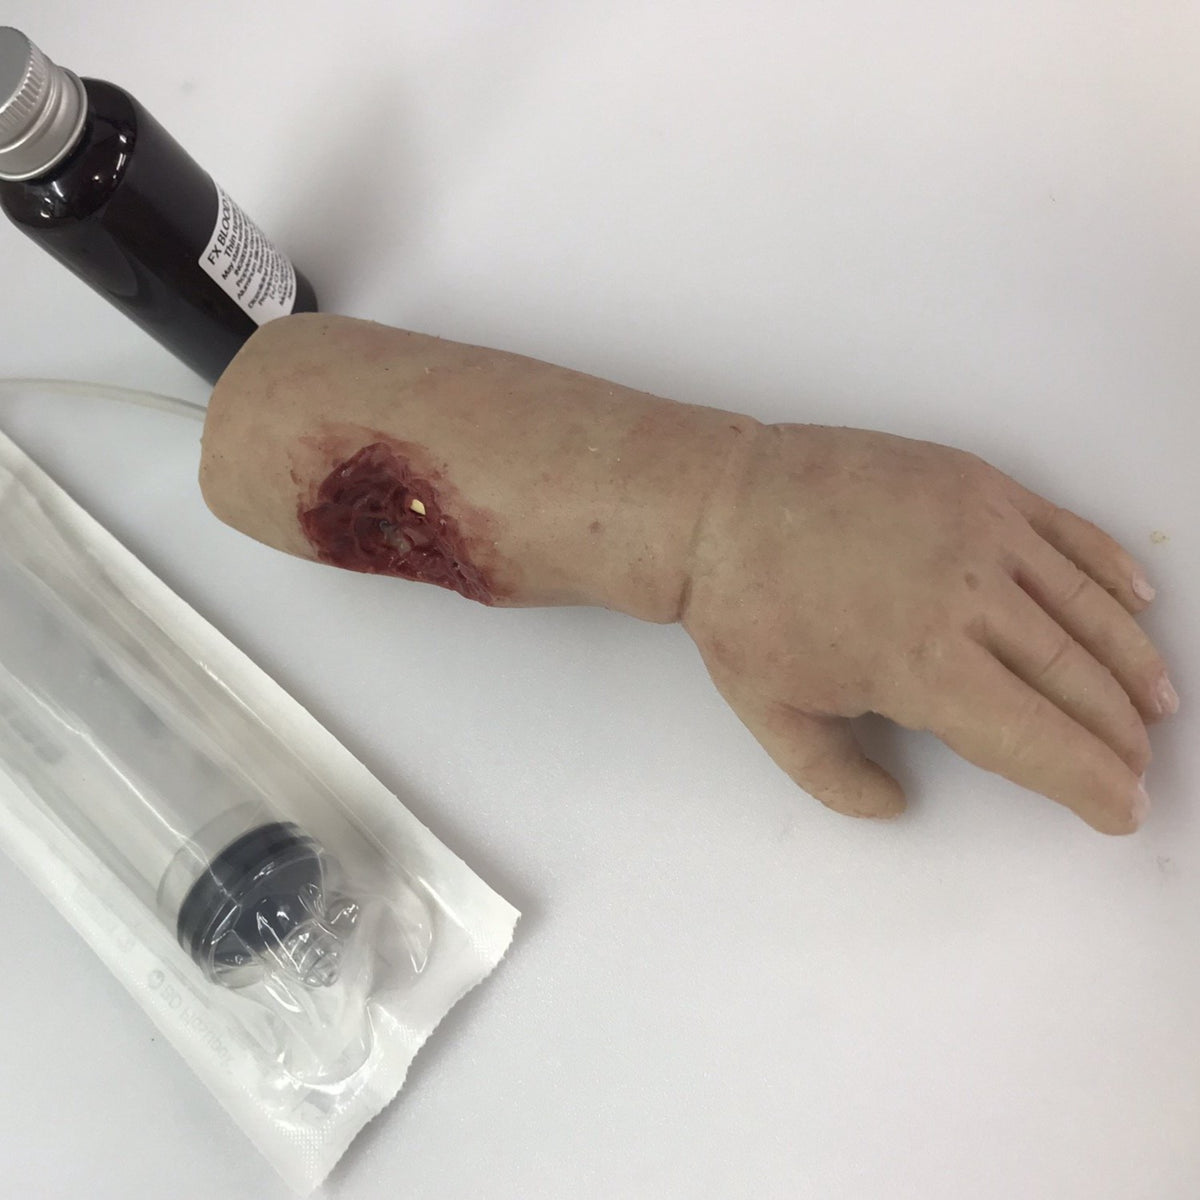 INFANT ARM WITH BITE WOUND